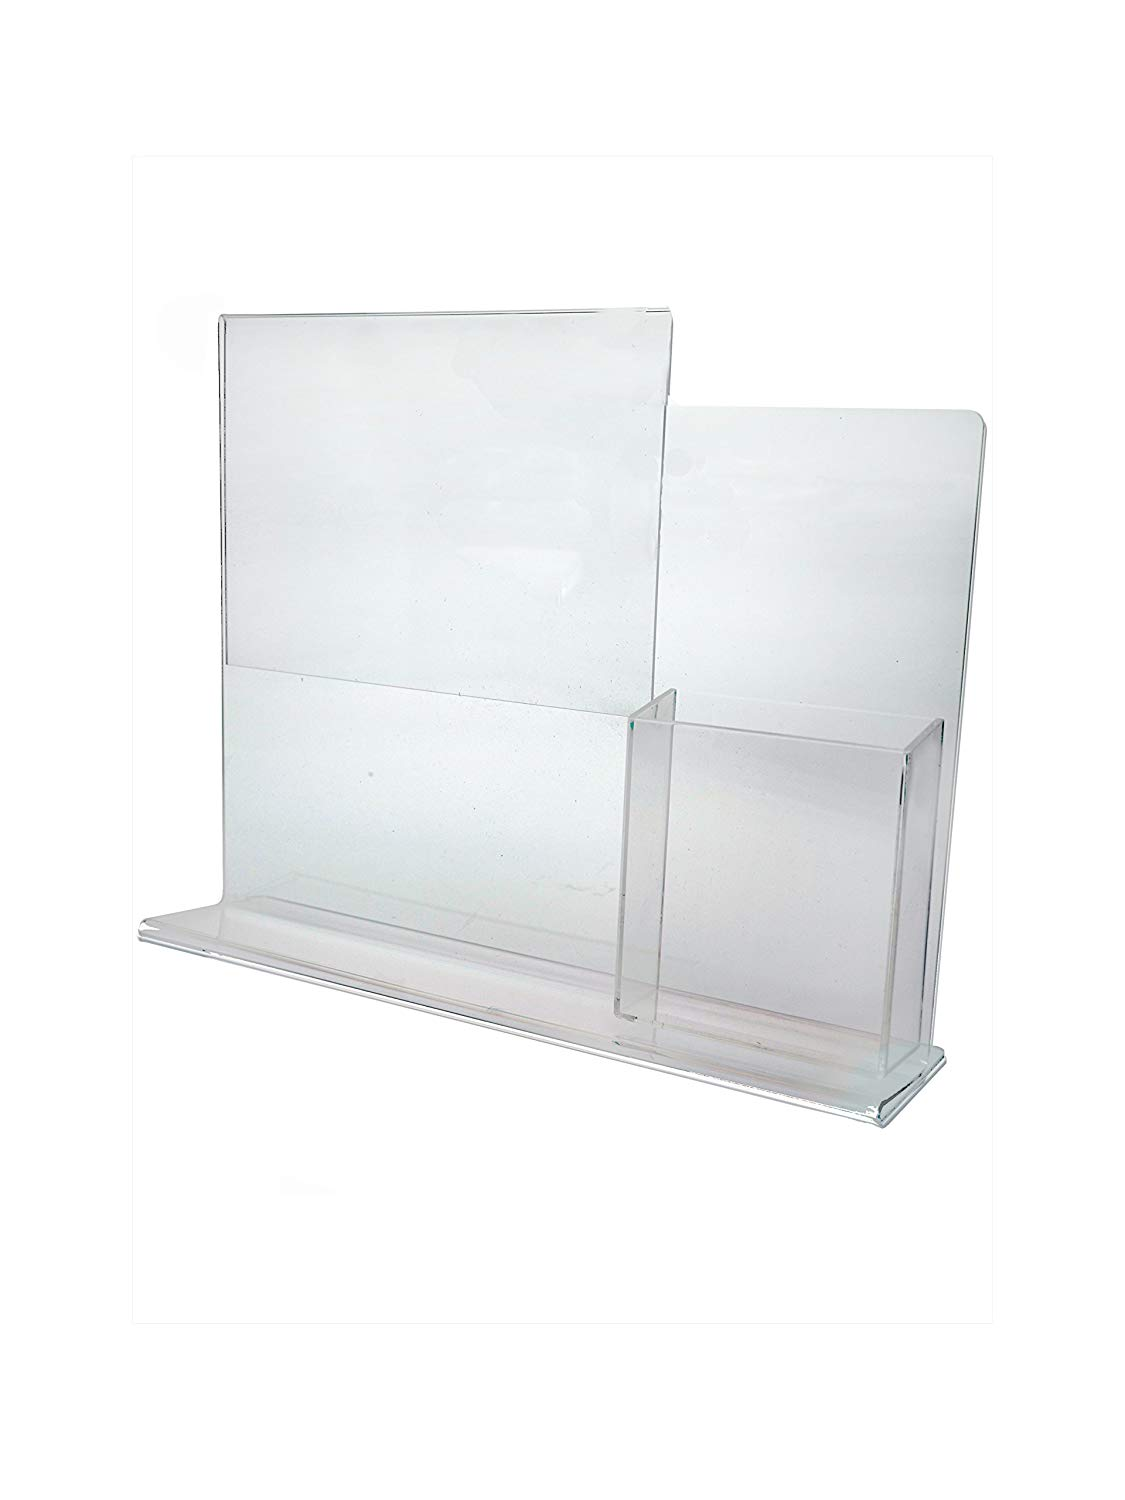 """Marketing Holders 8.5"""" x 11"""" Combo Ad Frame with attached Tri-Fold Brochure Holder"""